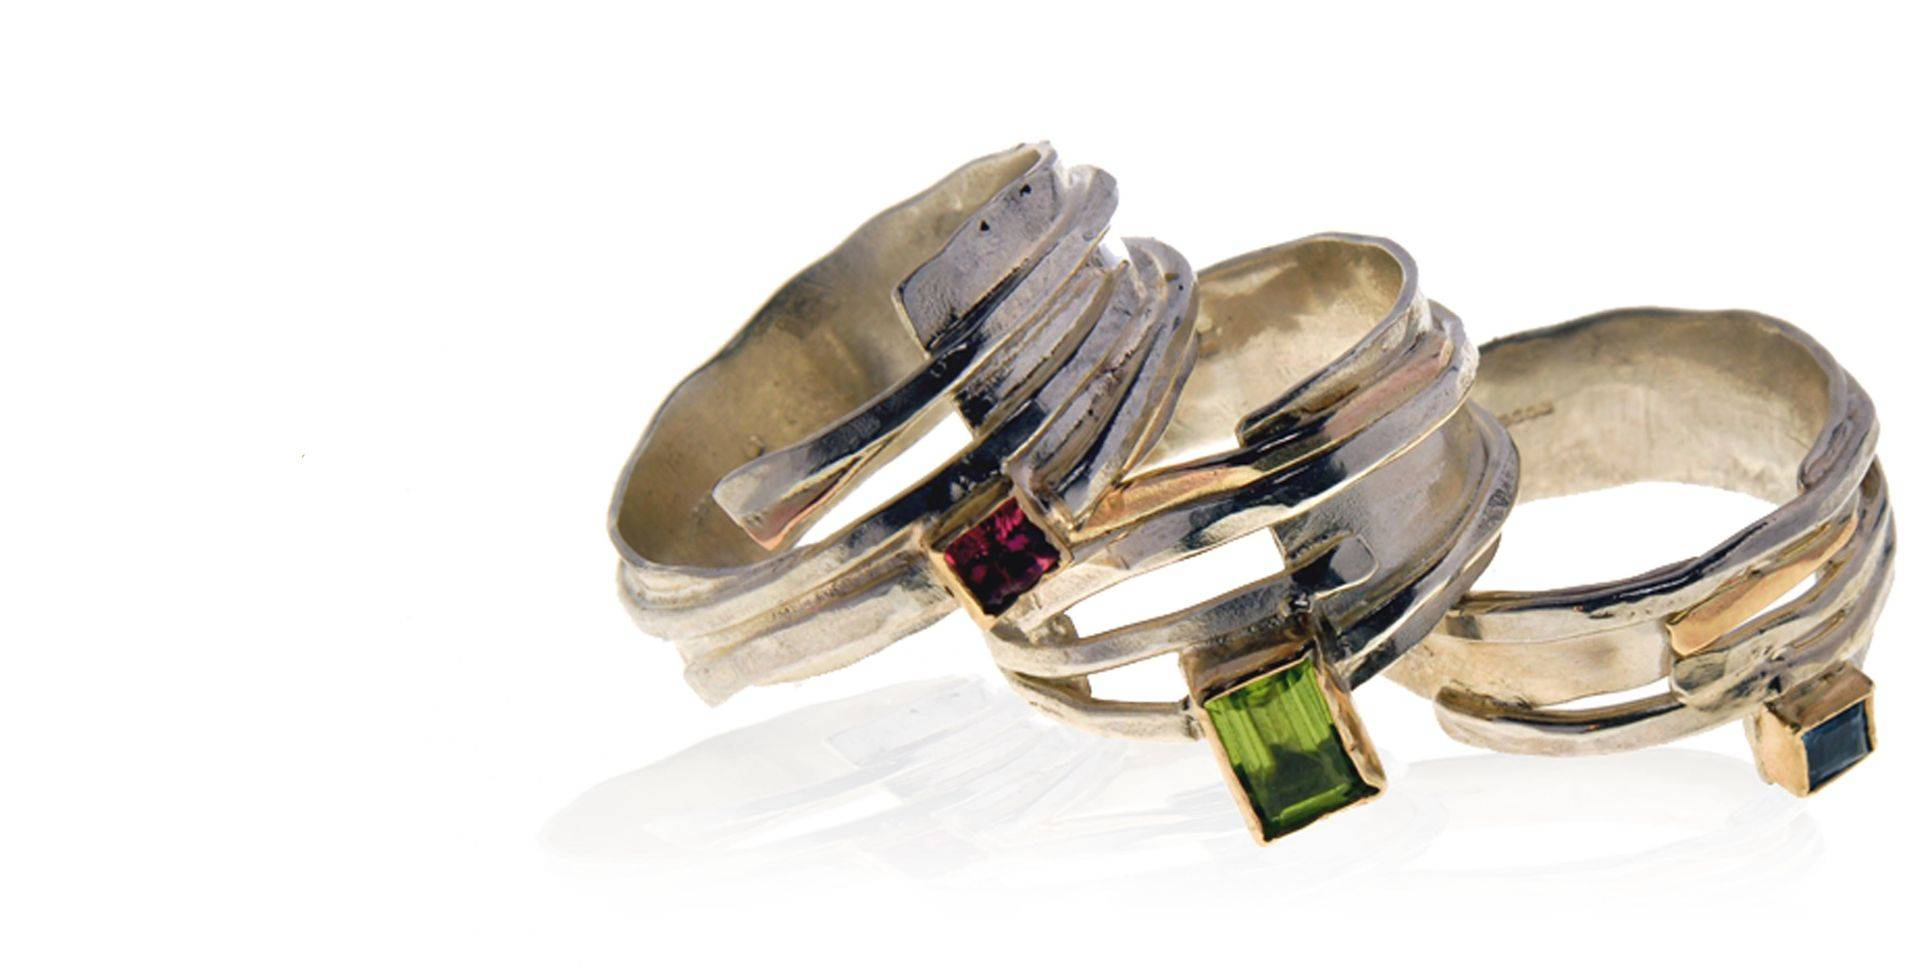 Silver and gold rings with semi-precious stones